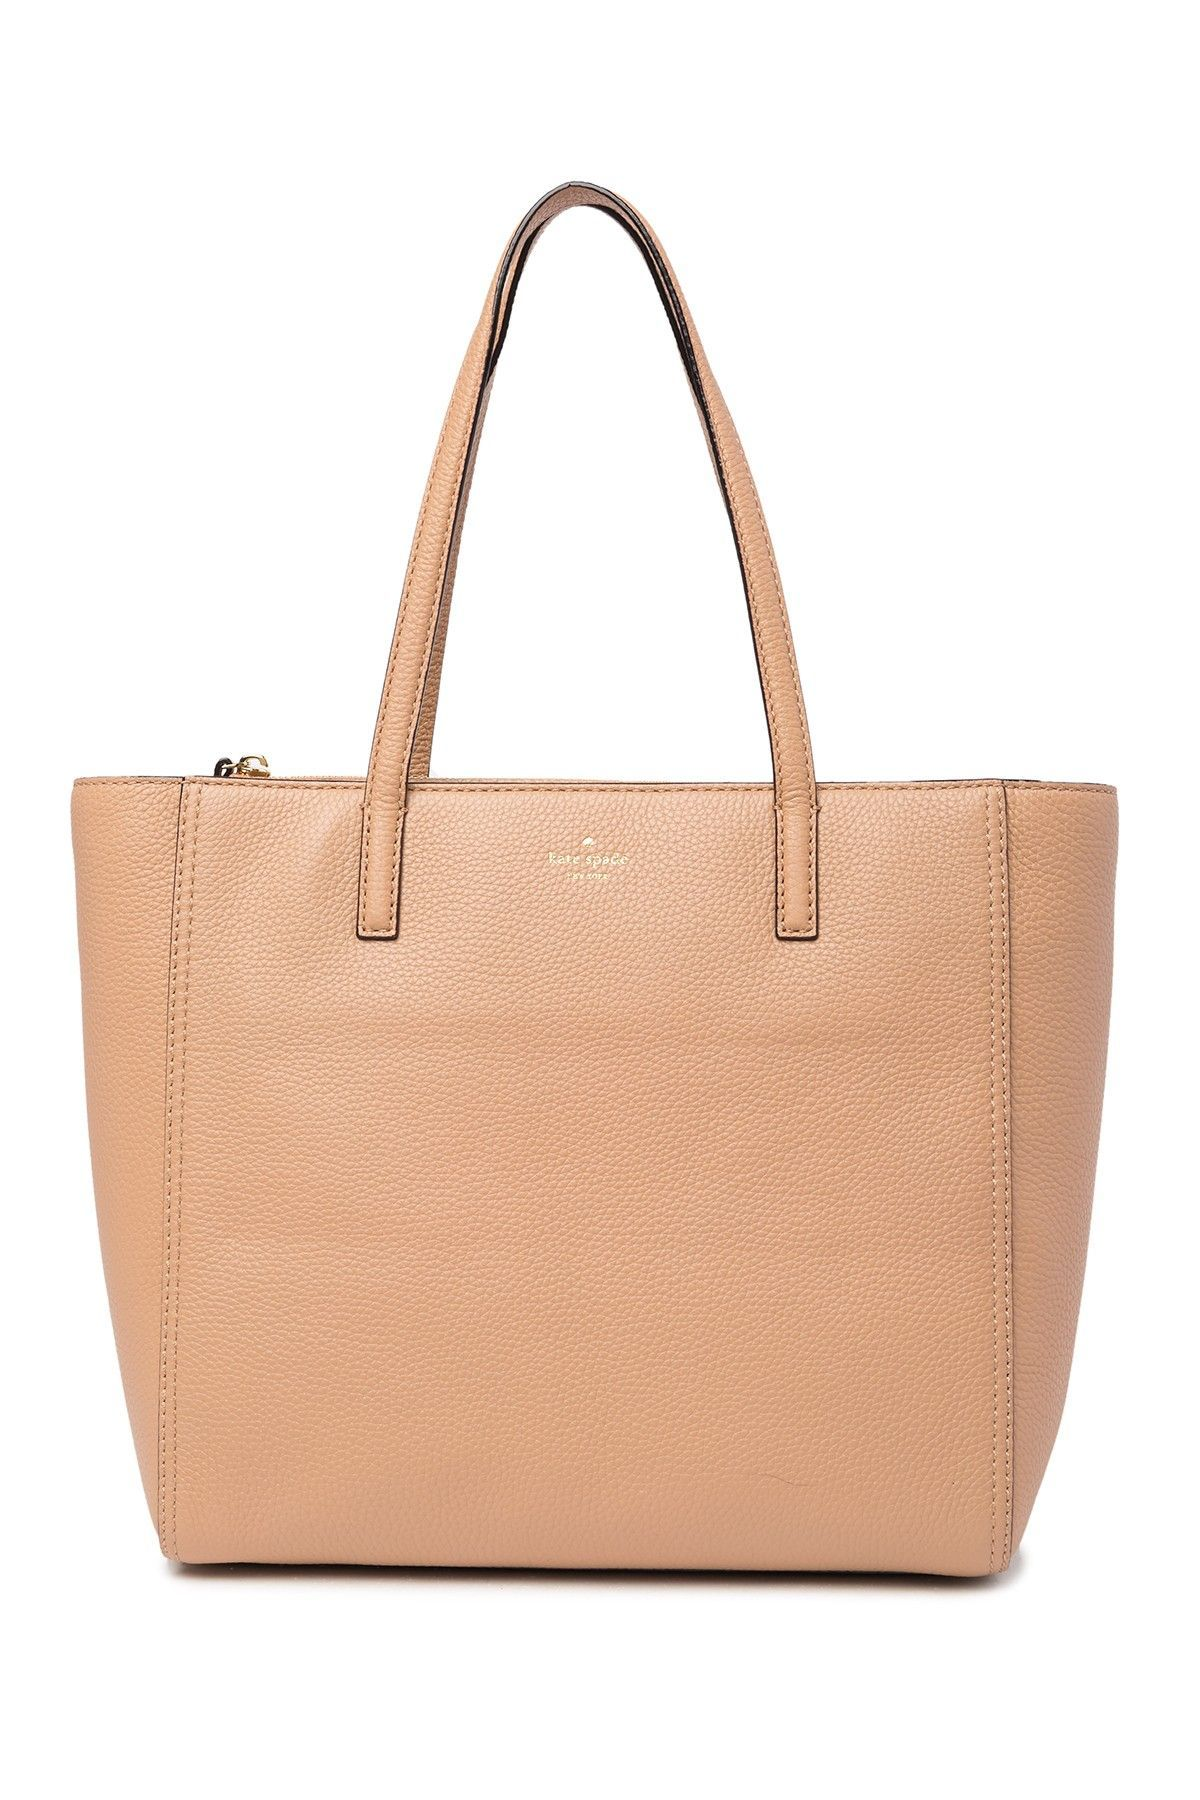 6110acd488d2 kate spade new york - hallie leather tote bag is now 50-62% off ...